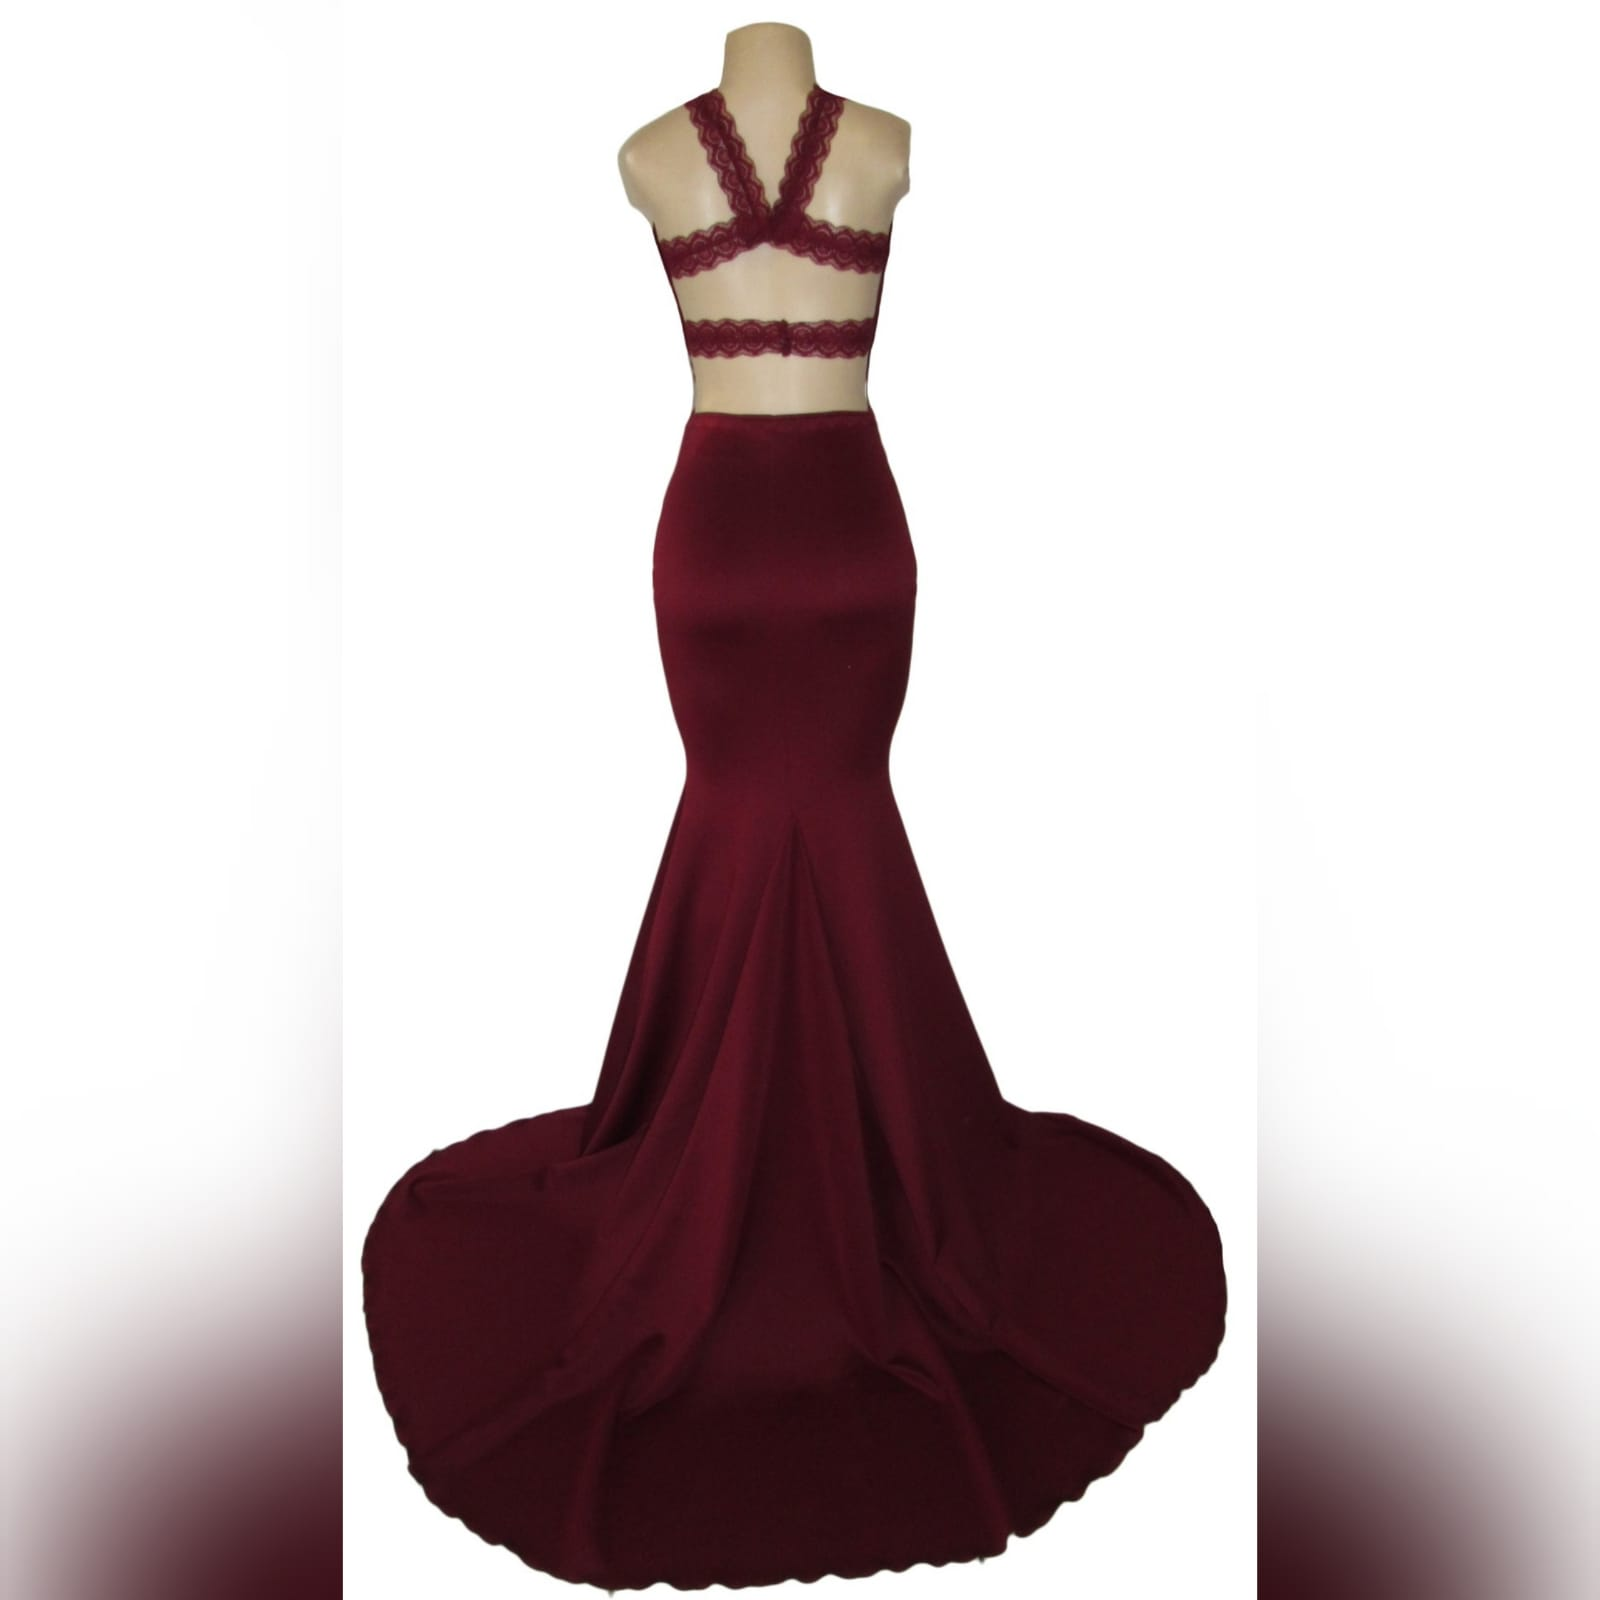 Maroon plunging neckline lace bodice matric dance dress 4 maroon plunging neckline lace bodice, soft mermaid matric dress with a train and an open back detailed with lace straps.